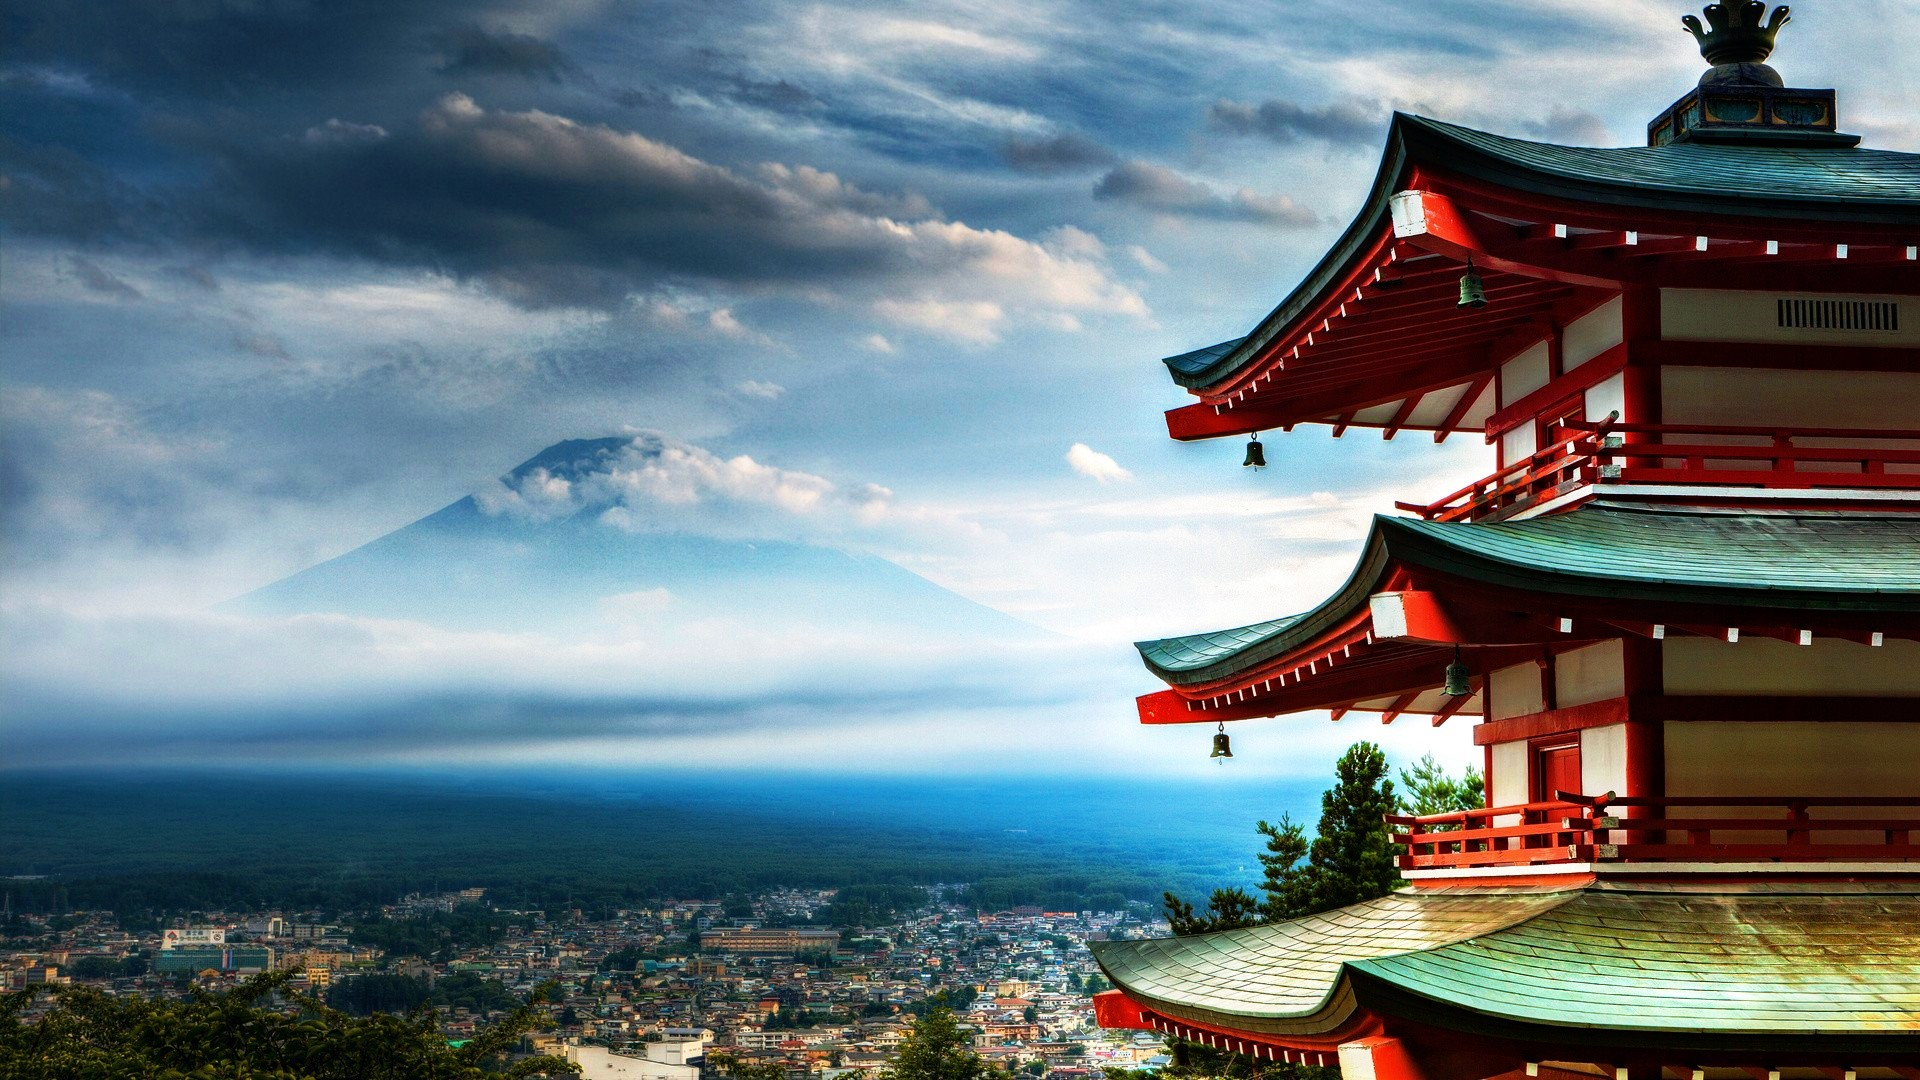 awesome-japan-wallpaper-20182-21006-hd-wallpapers